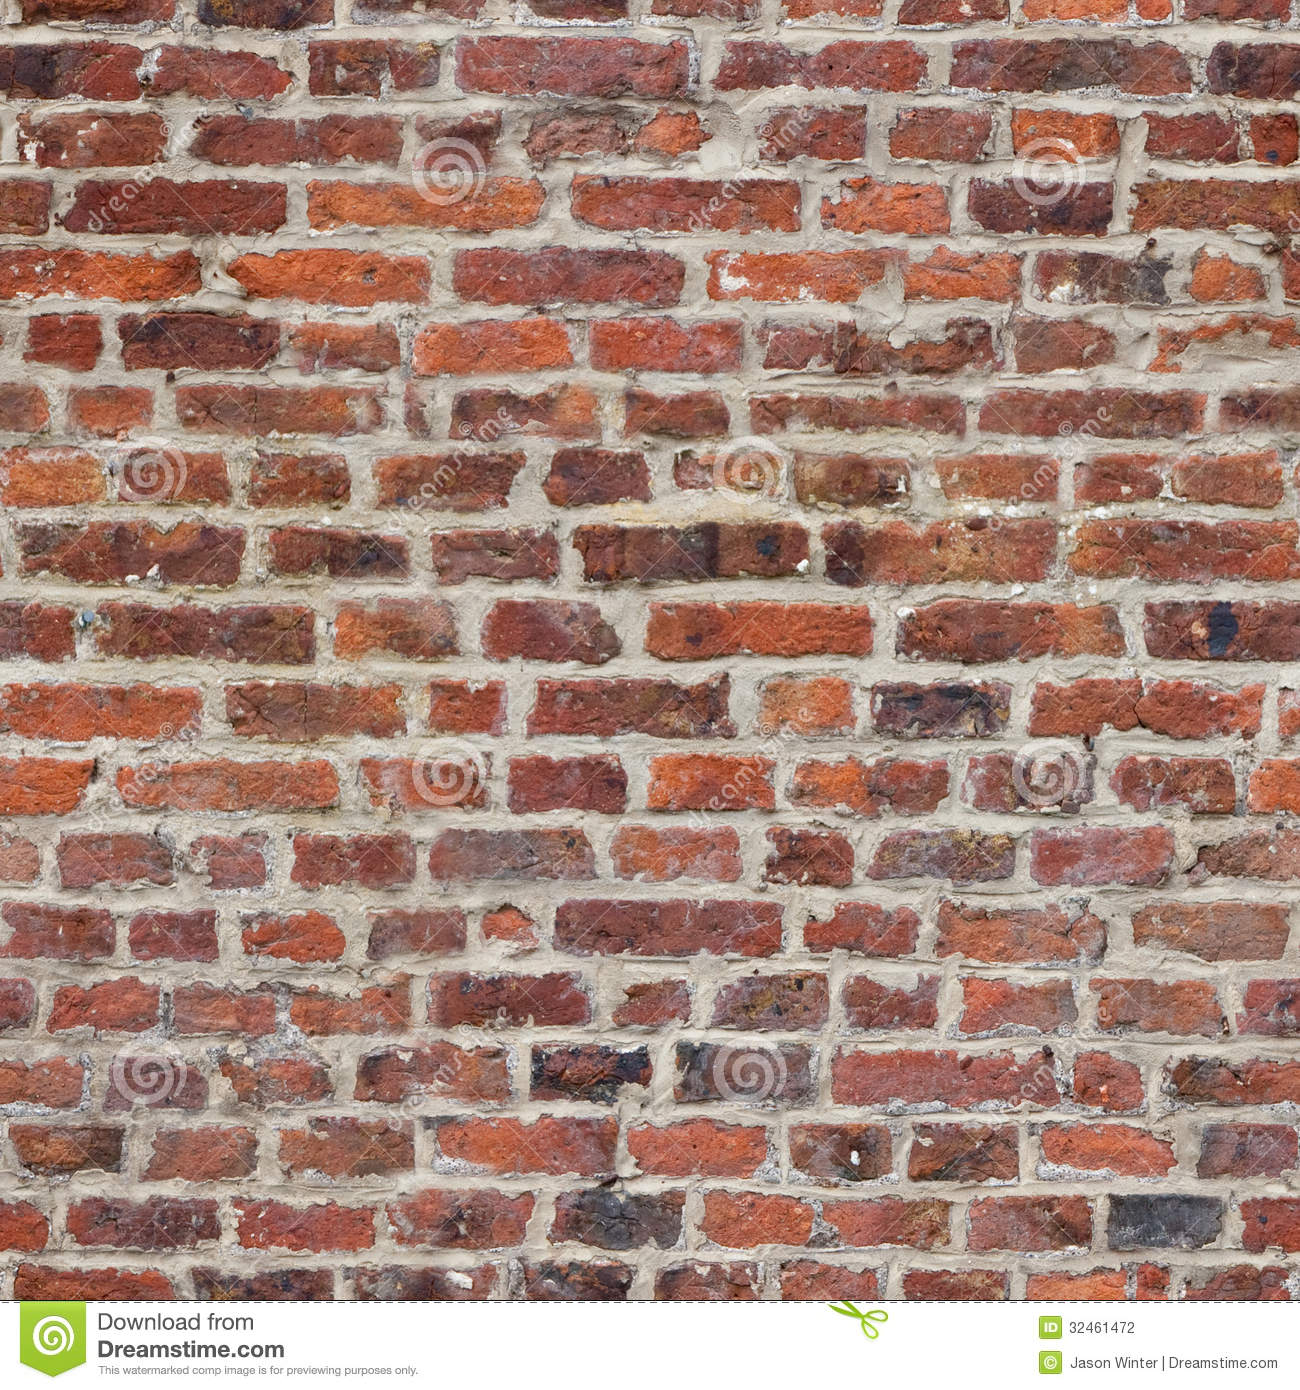 Repeating Tileable Rustic Brick Wall Wallpaper Background